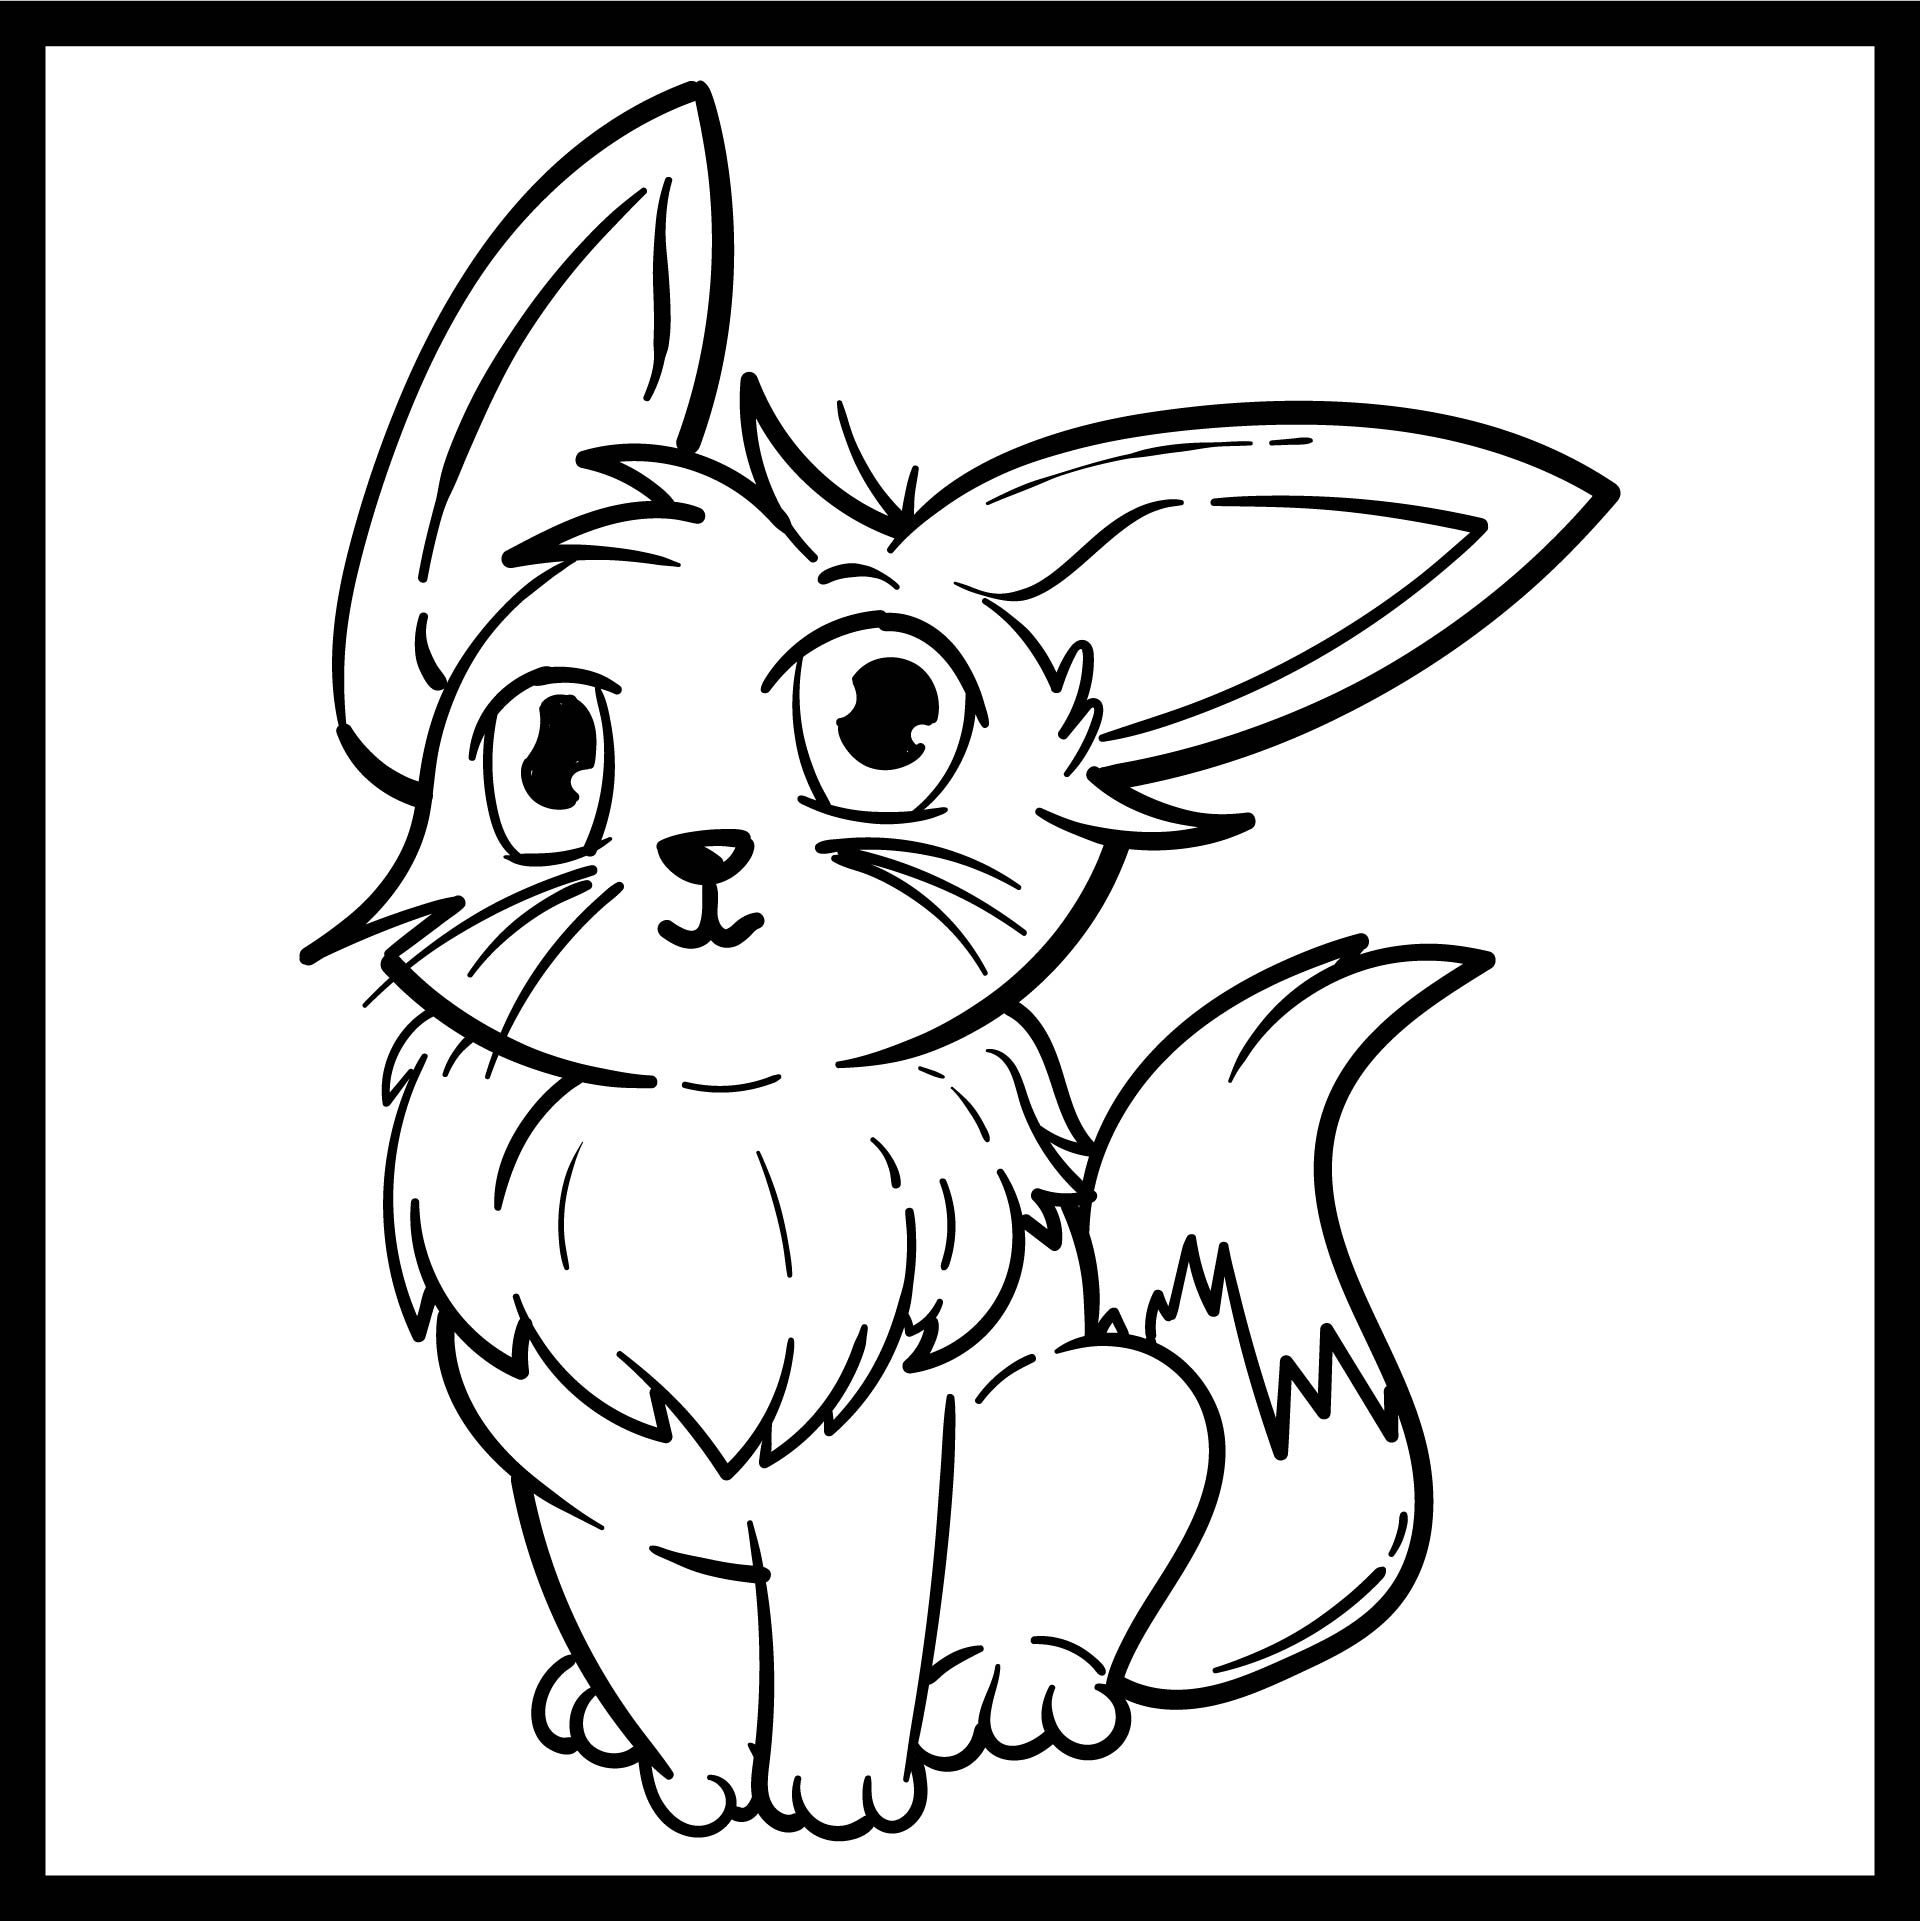 lps pictures to print lps coloring book coloring pages printablecom lps pictures to print